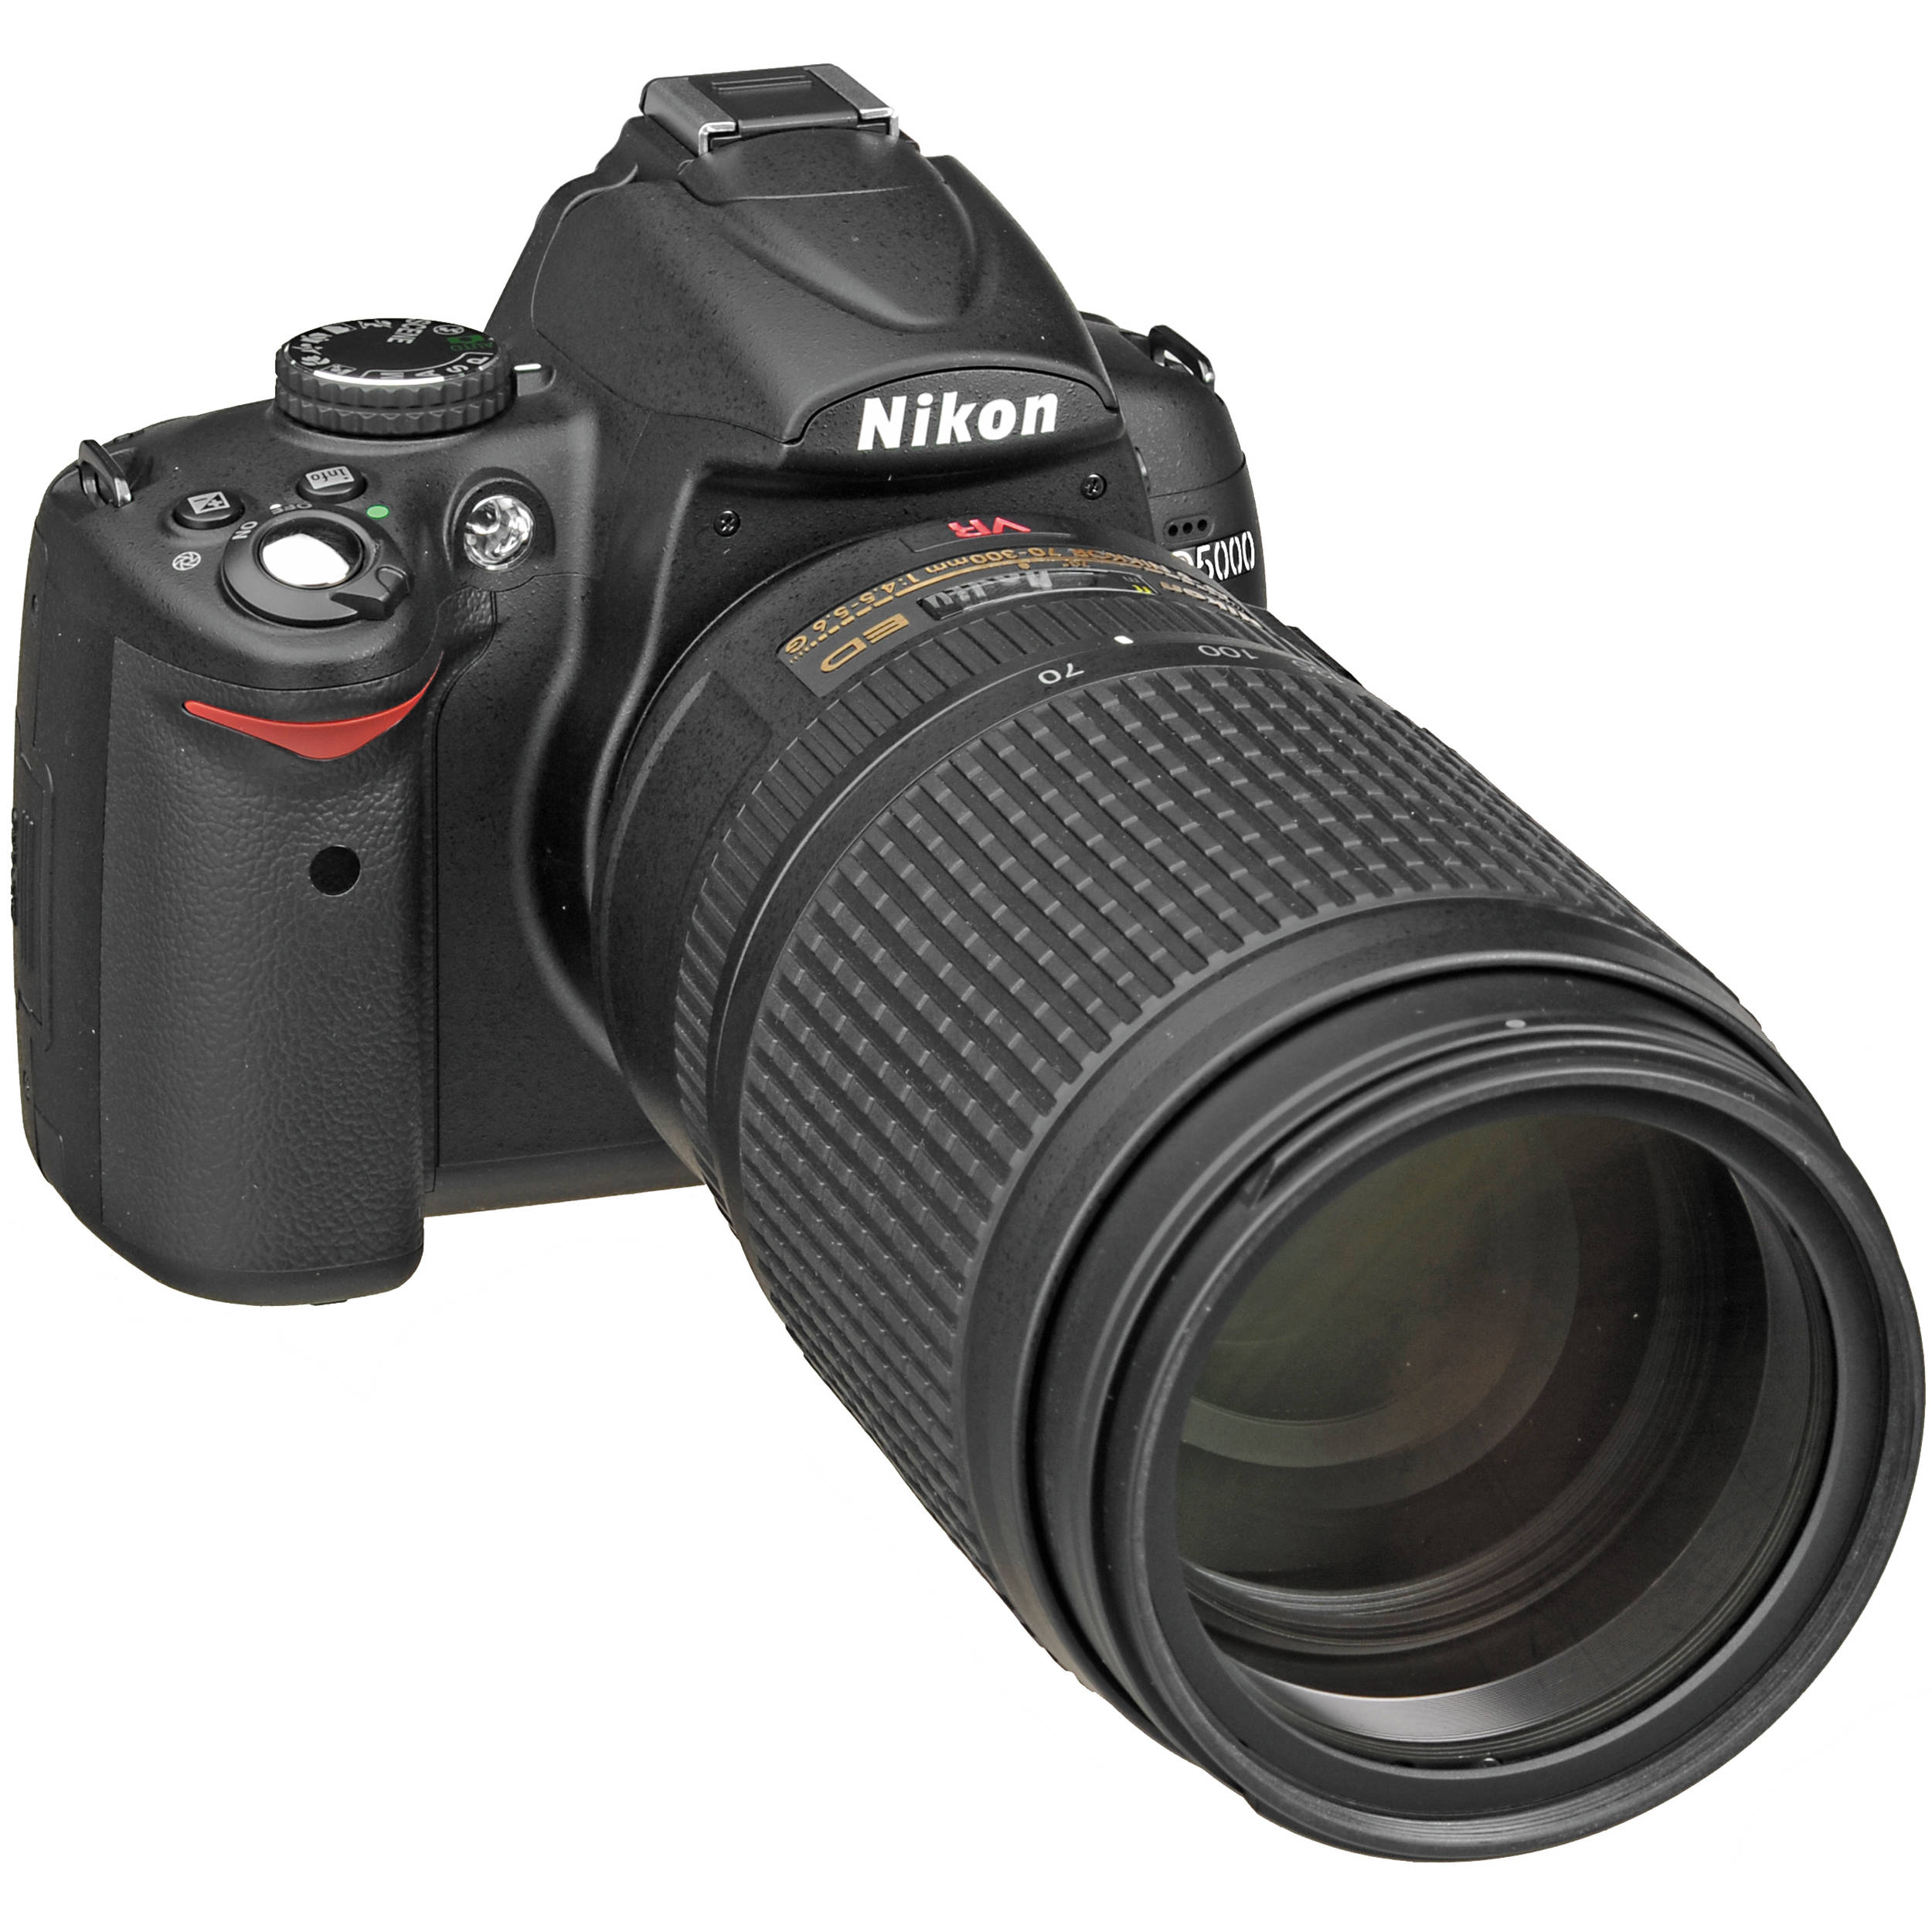 Nikon D5000 Digital SLR Camera with 70-300mm VR f/4-5.6G Lens